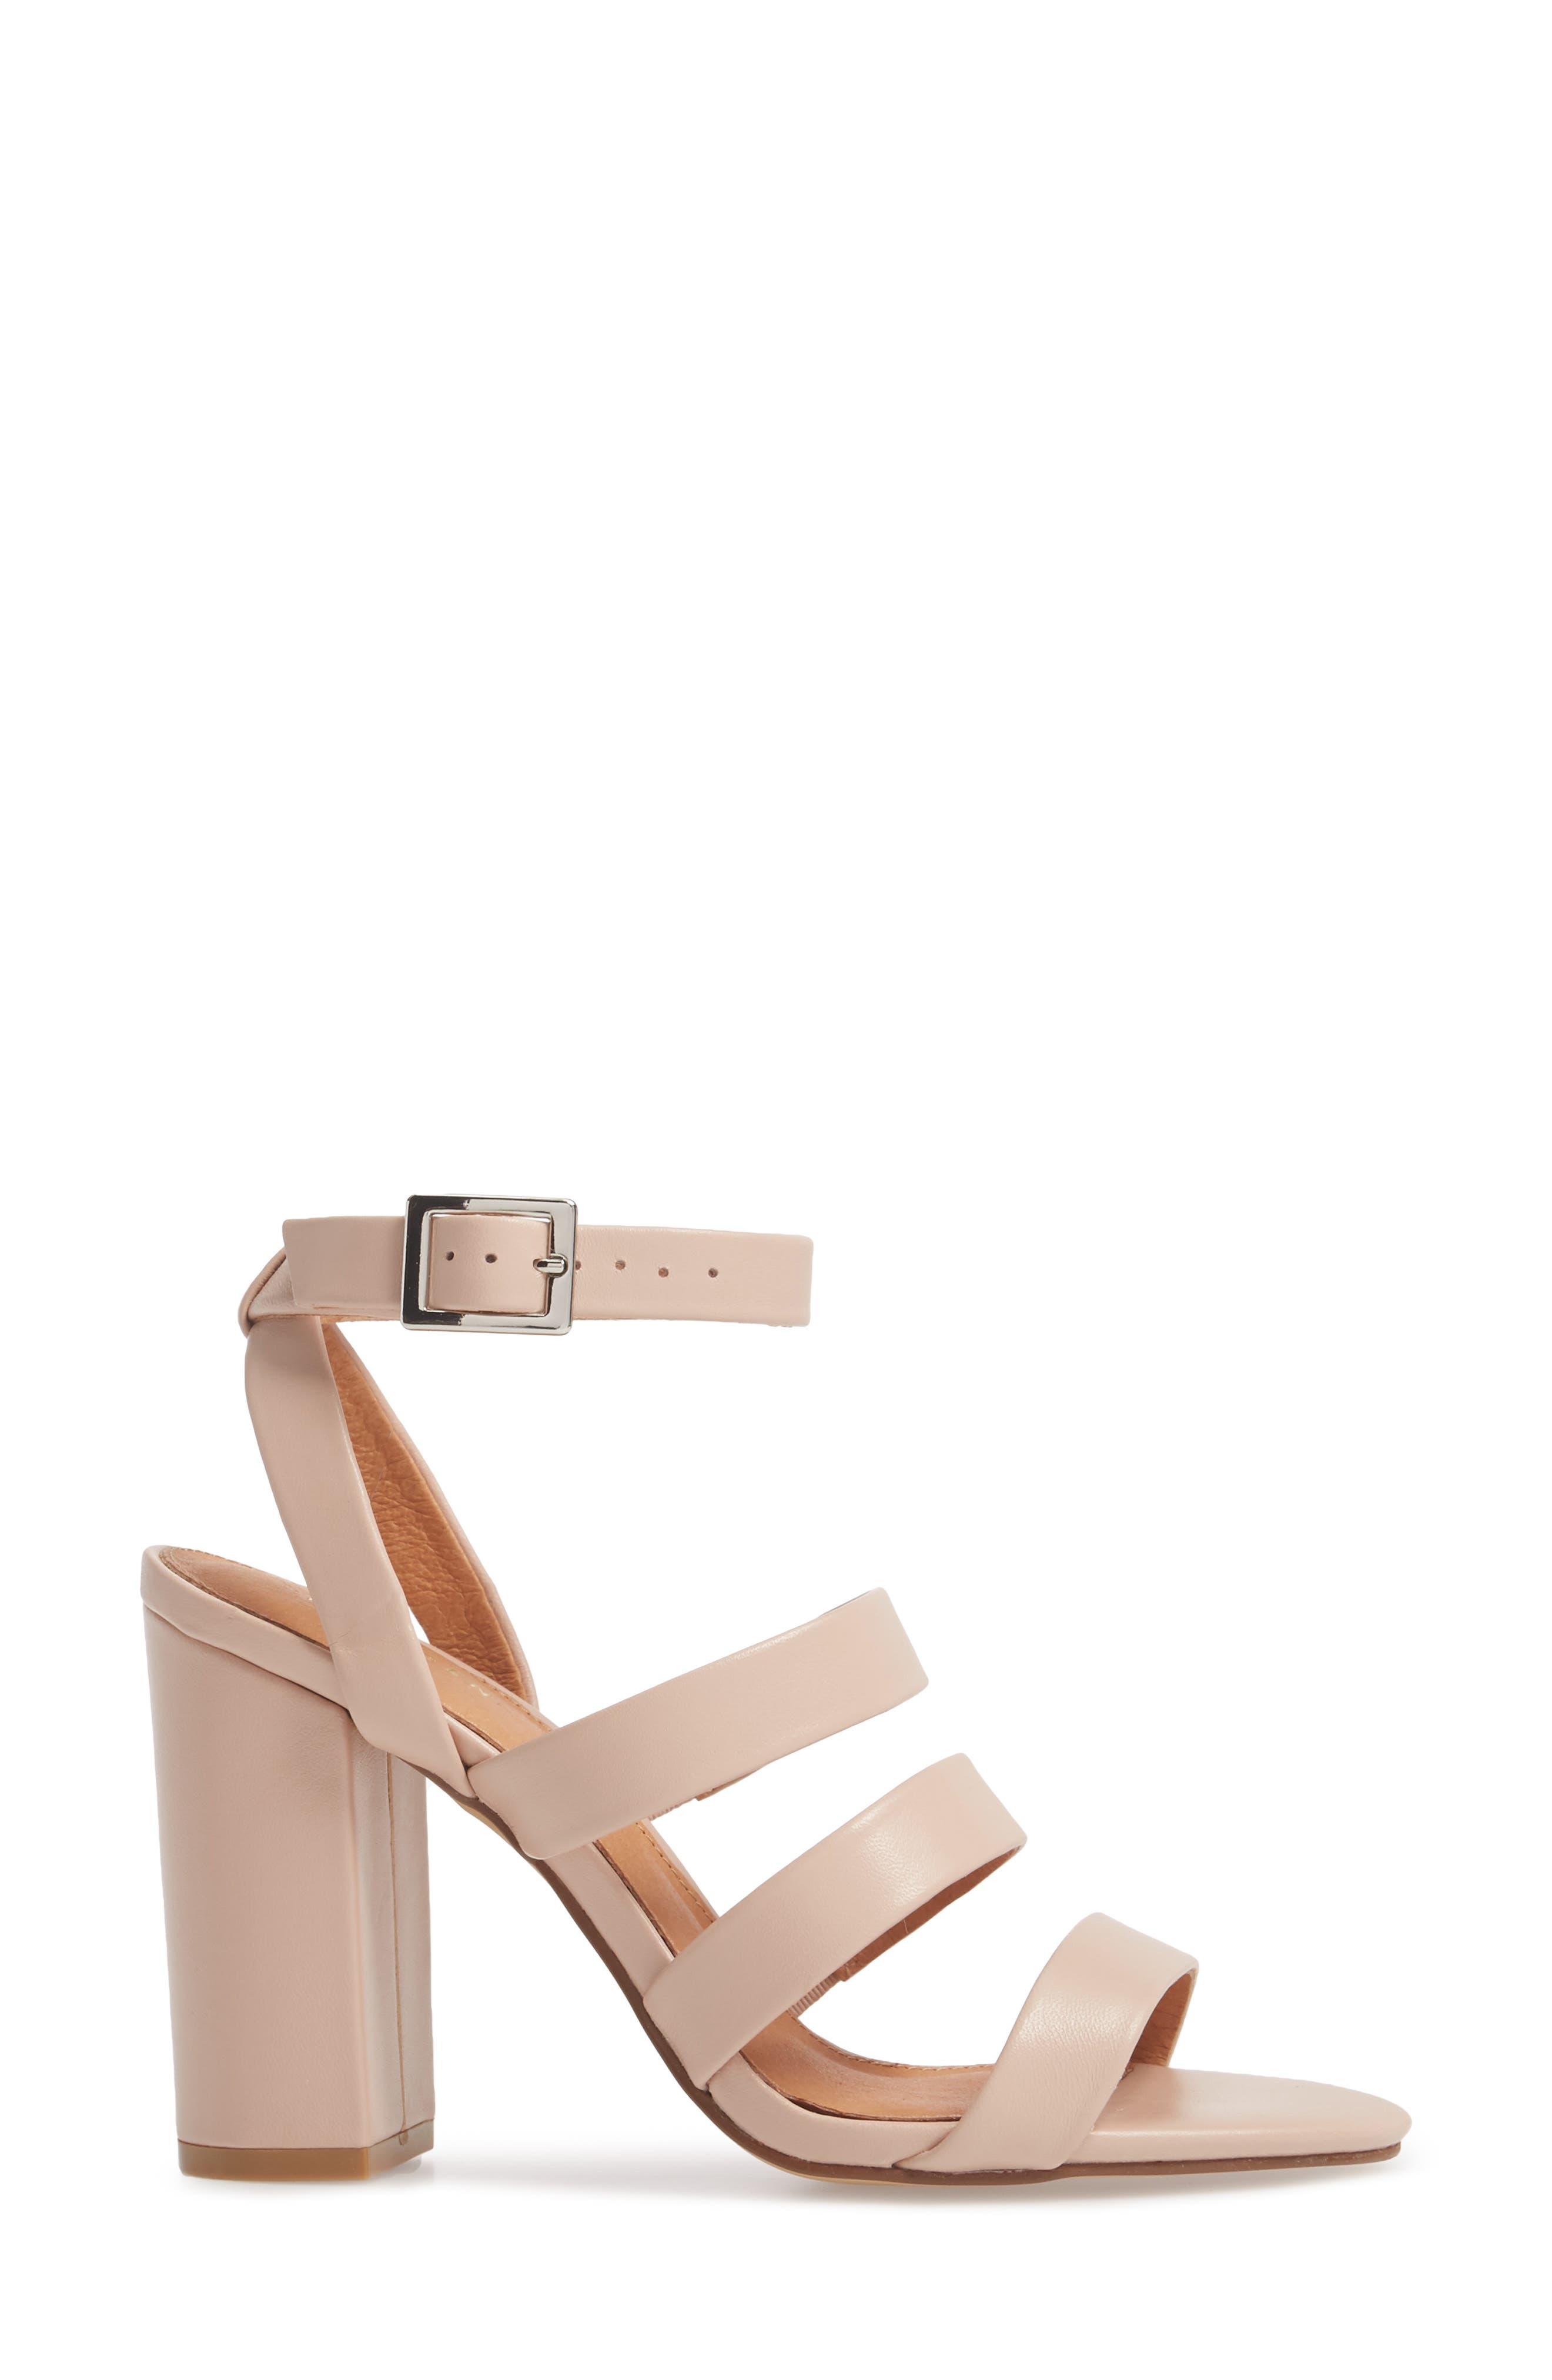 Rocco Sandal,                             Alternate thumbnail 3, color,                             BLUSH LEATHER